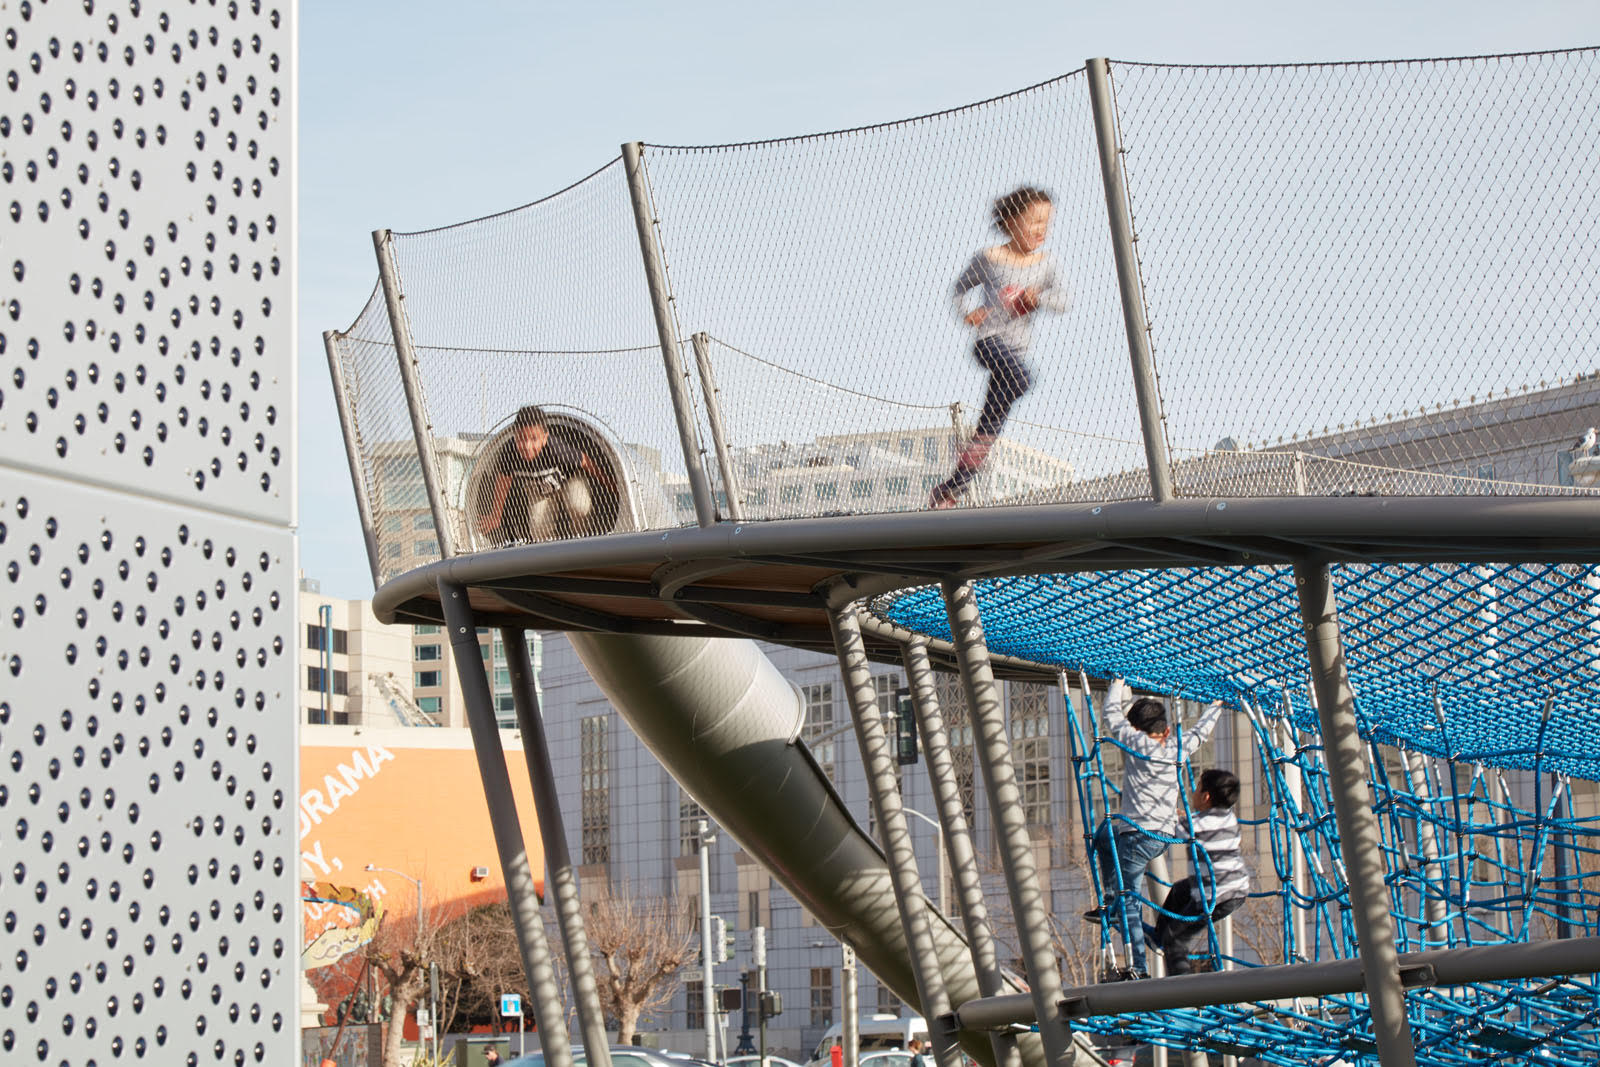 The playground is a great place for city kids to burn off energy. Photo by Bruce Damonte.